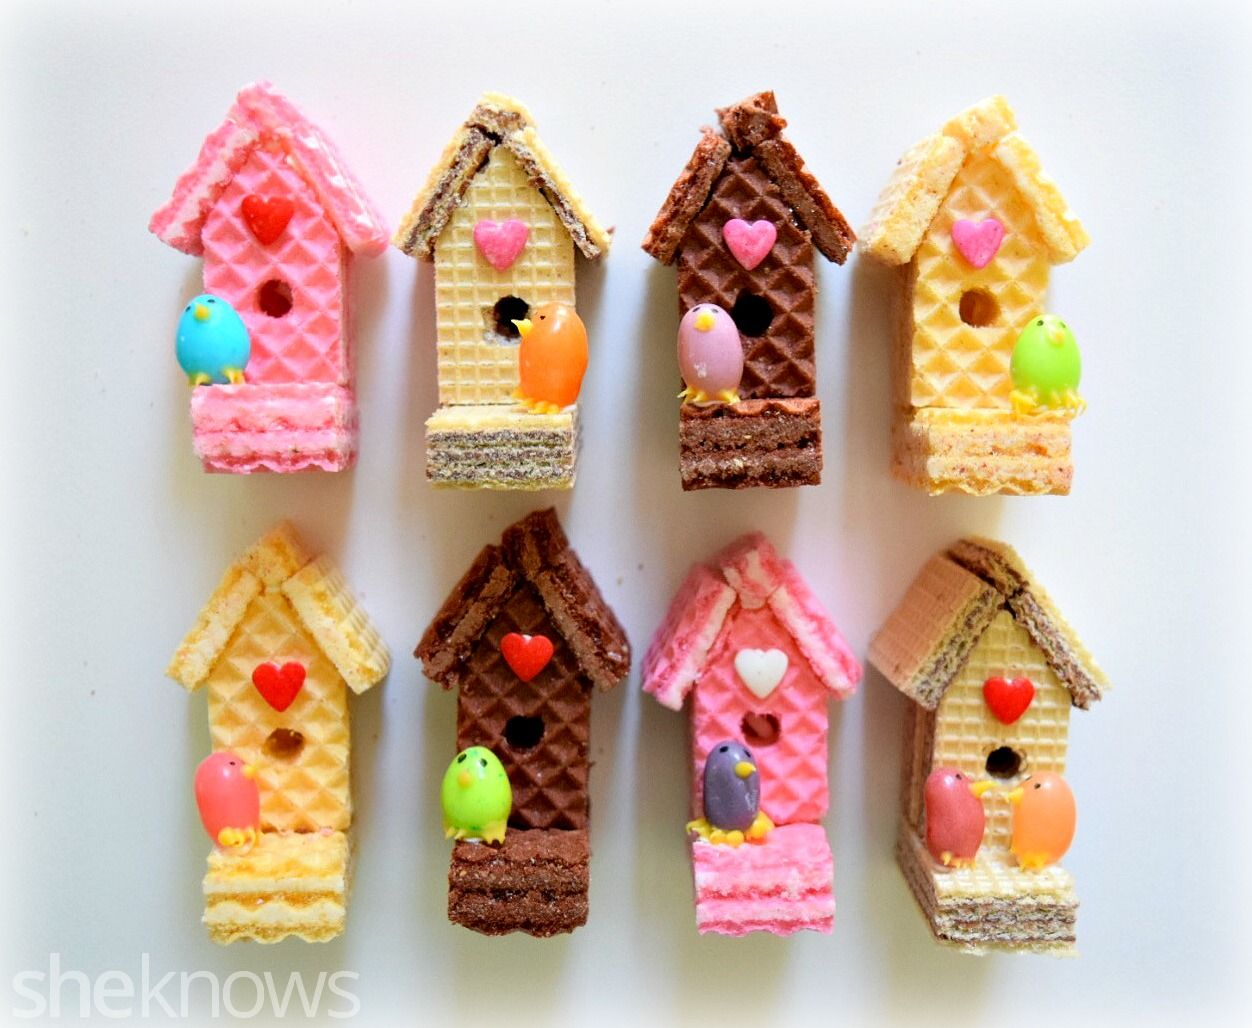 Sugar Swings! Serve Some: Mini birdhouse treats with jelly bean birds